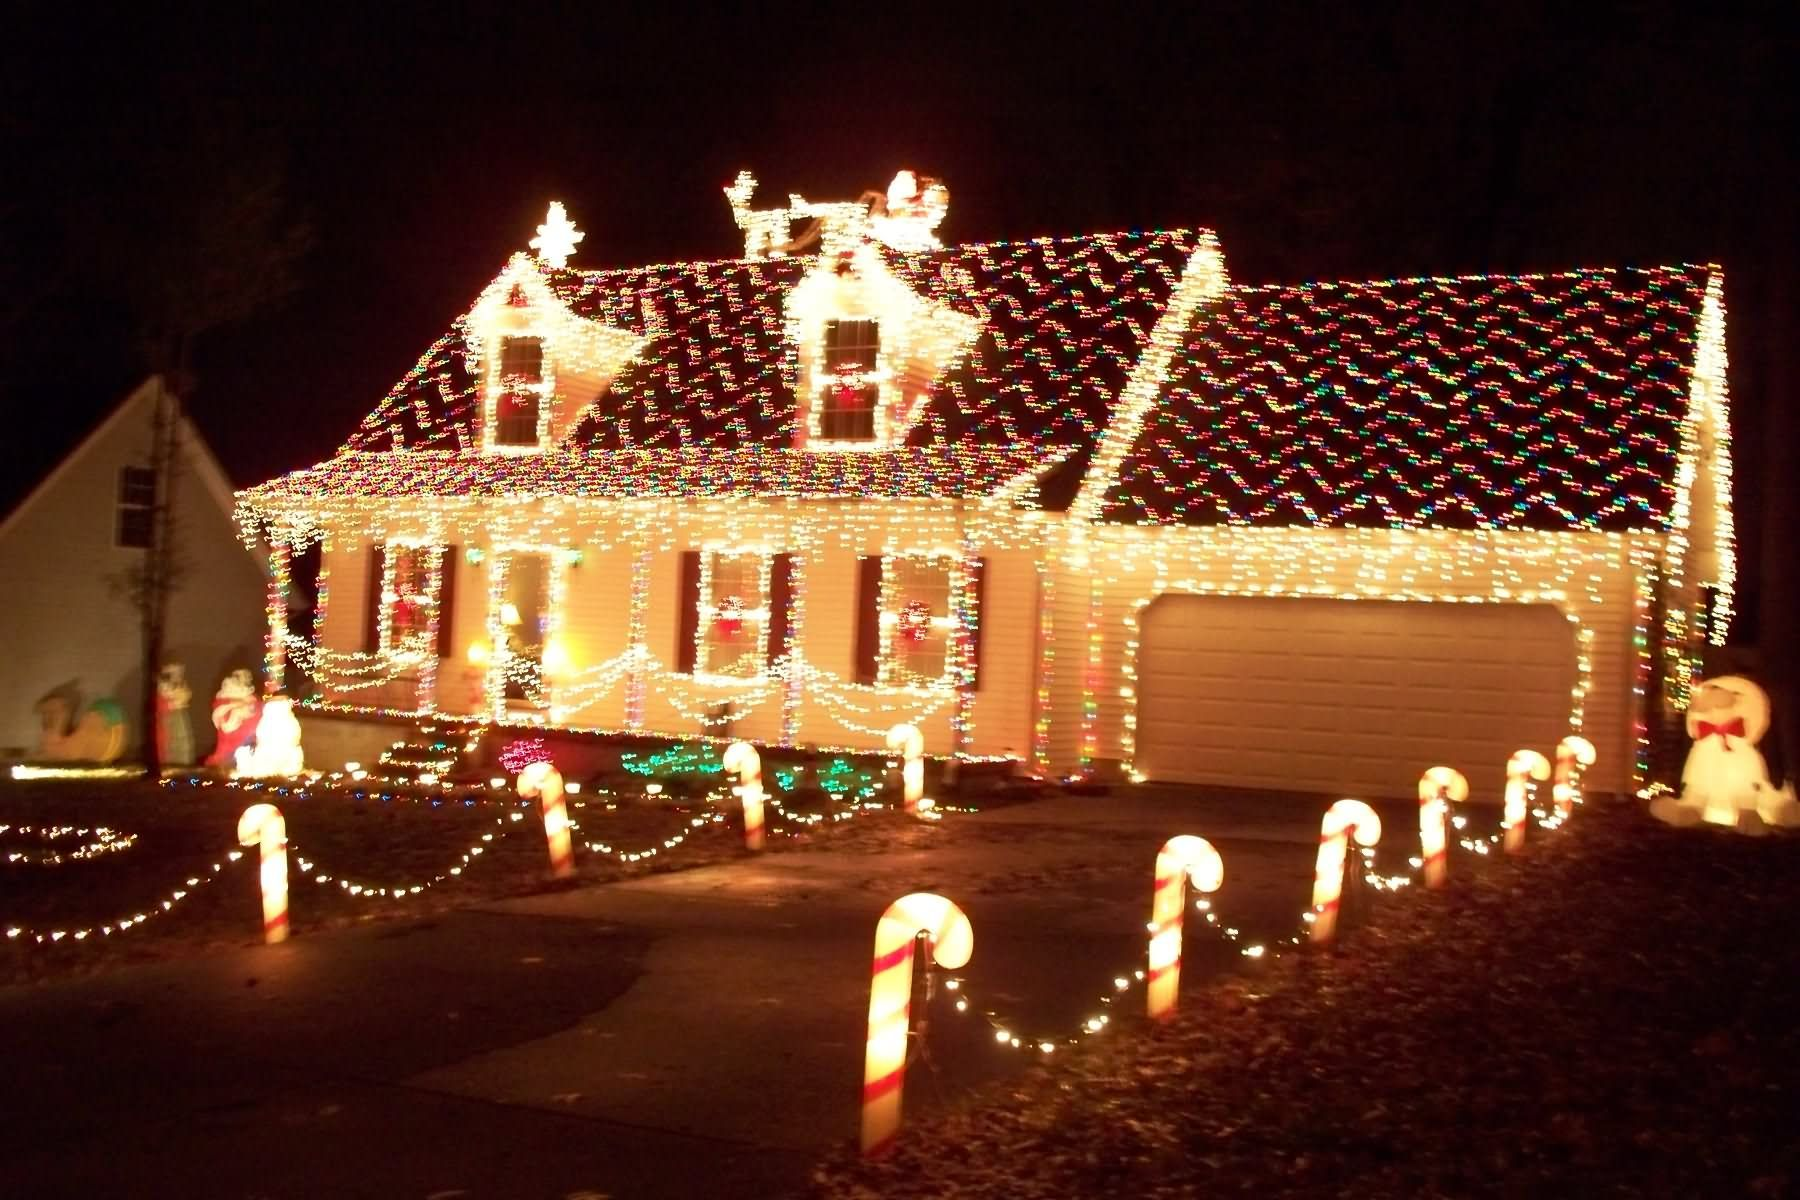 Christmas Houses Decorated Fair Christmas Decorations For Your House  Home Design Ideas O_O . Inspiration Design